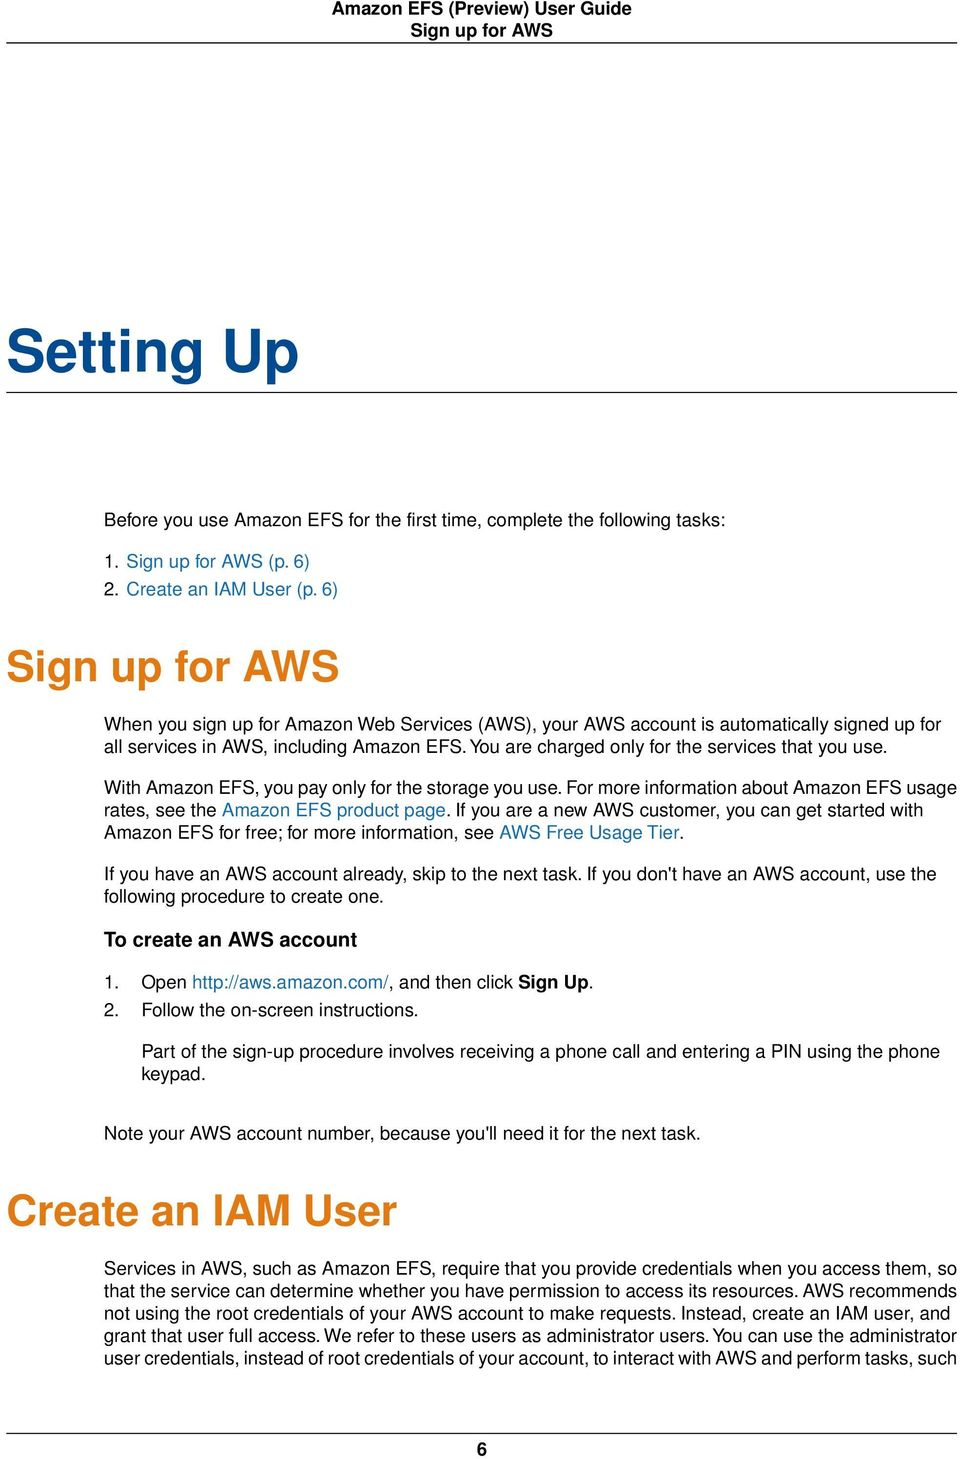 Amazon EFS (Preview) User Guide - PDF